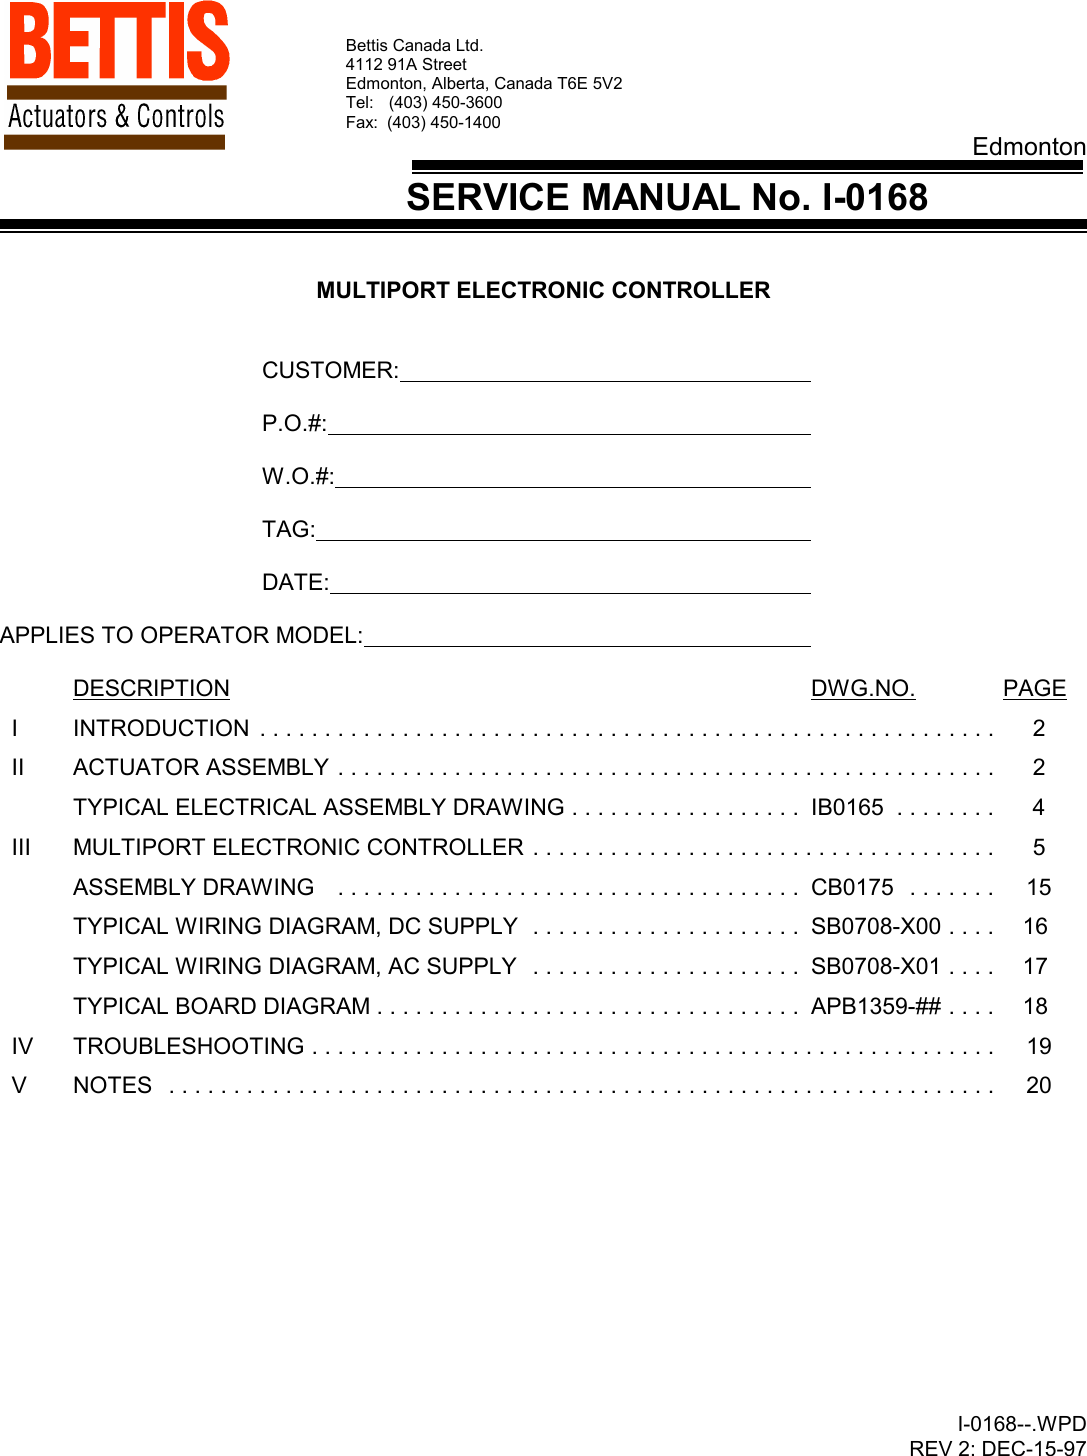 [DIAGRAM_0HG]  Emerson Multiport Flow Selector I 0168 Service Manual | Bettis Valve 120 Volt Wiring Diagram |  | UserManual.wiki